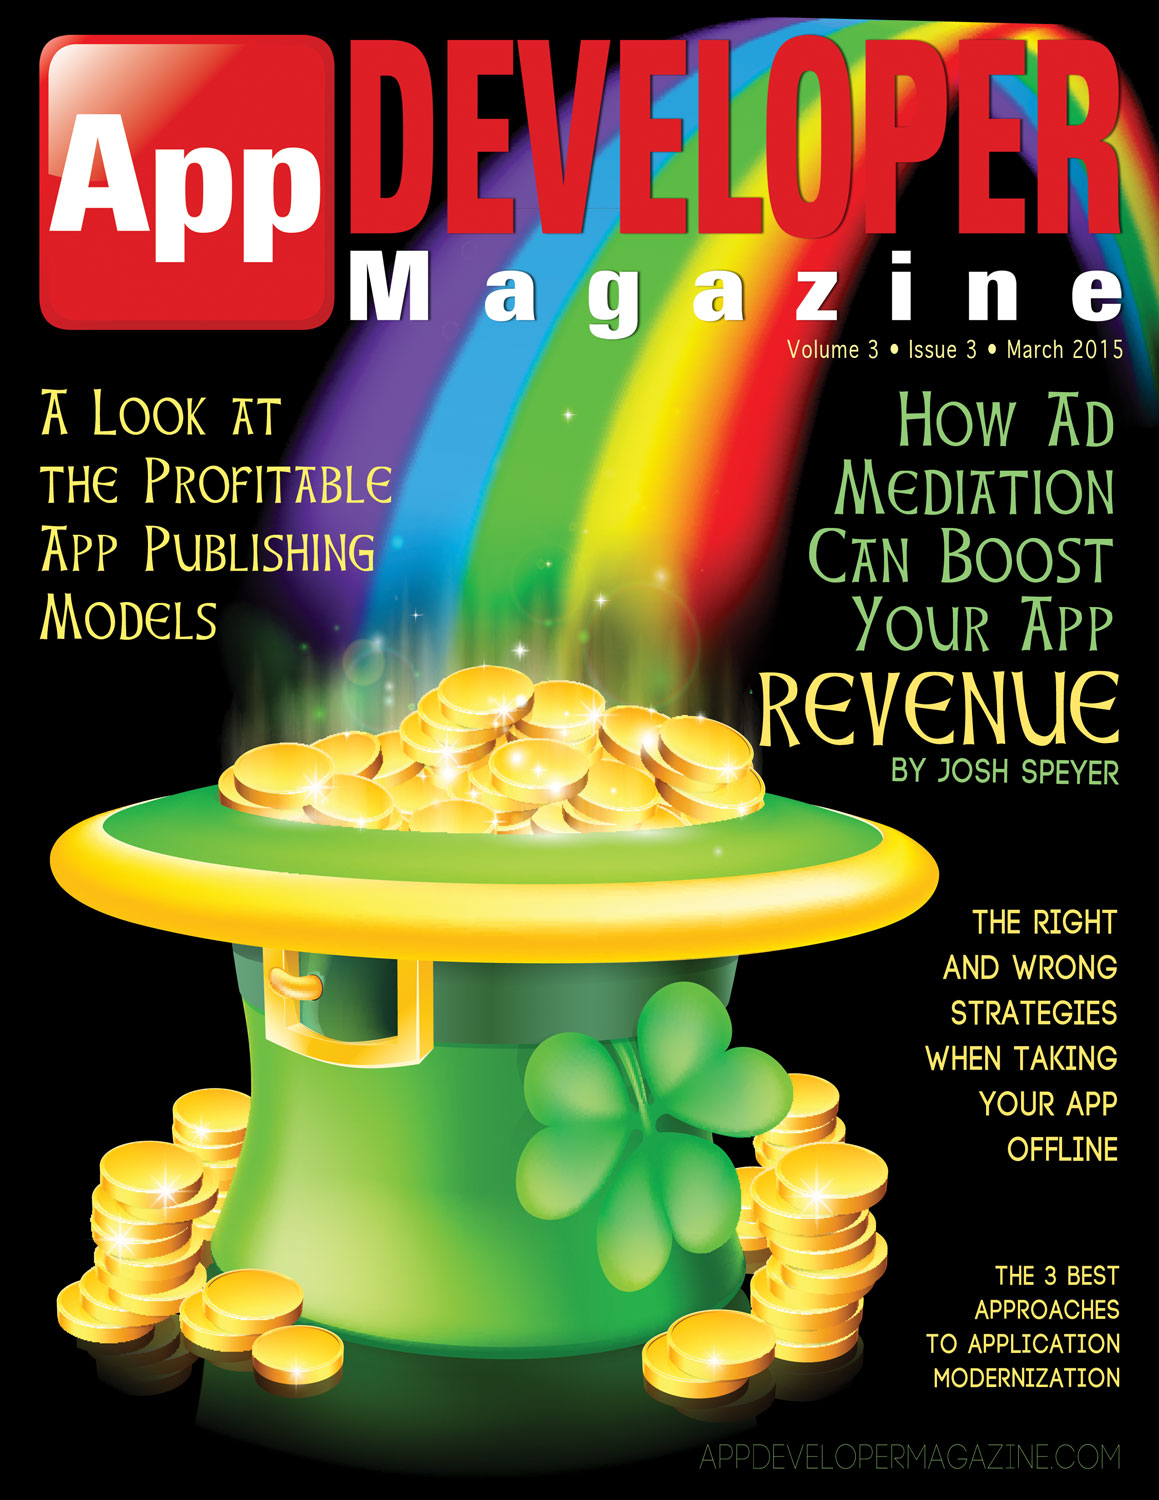 App Developer Magazine March 2015 Cover